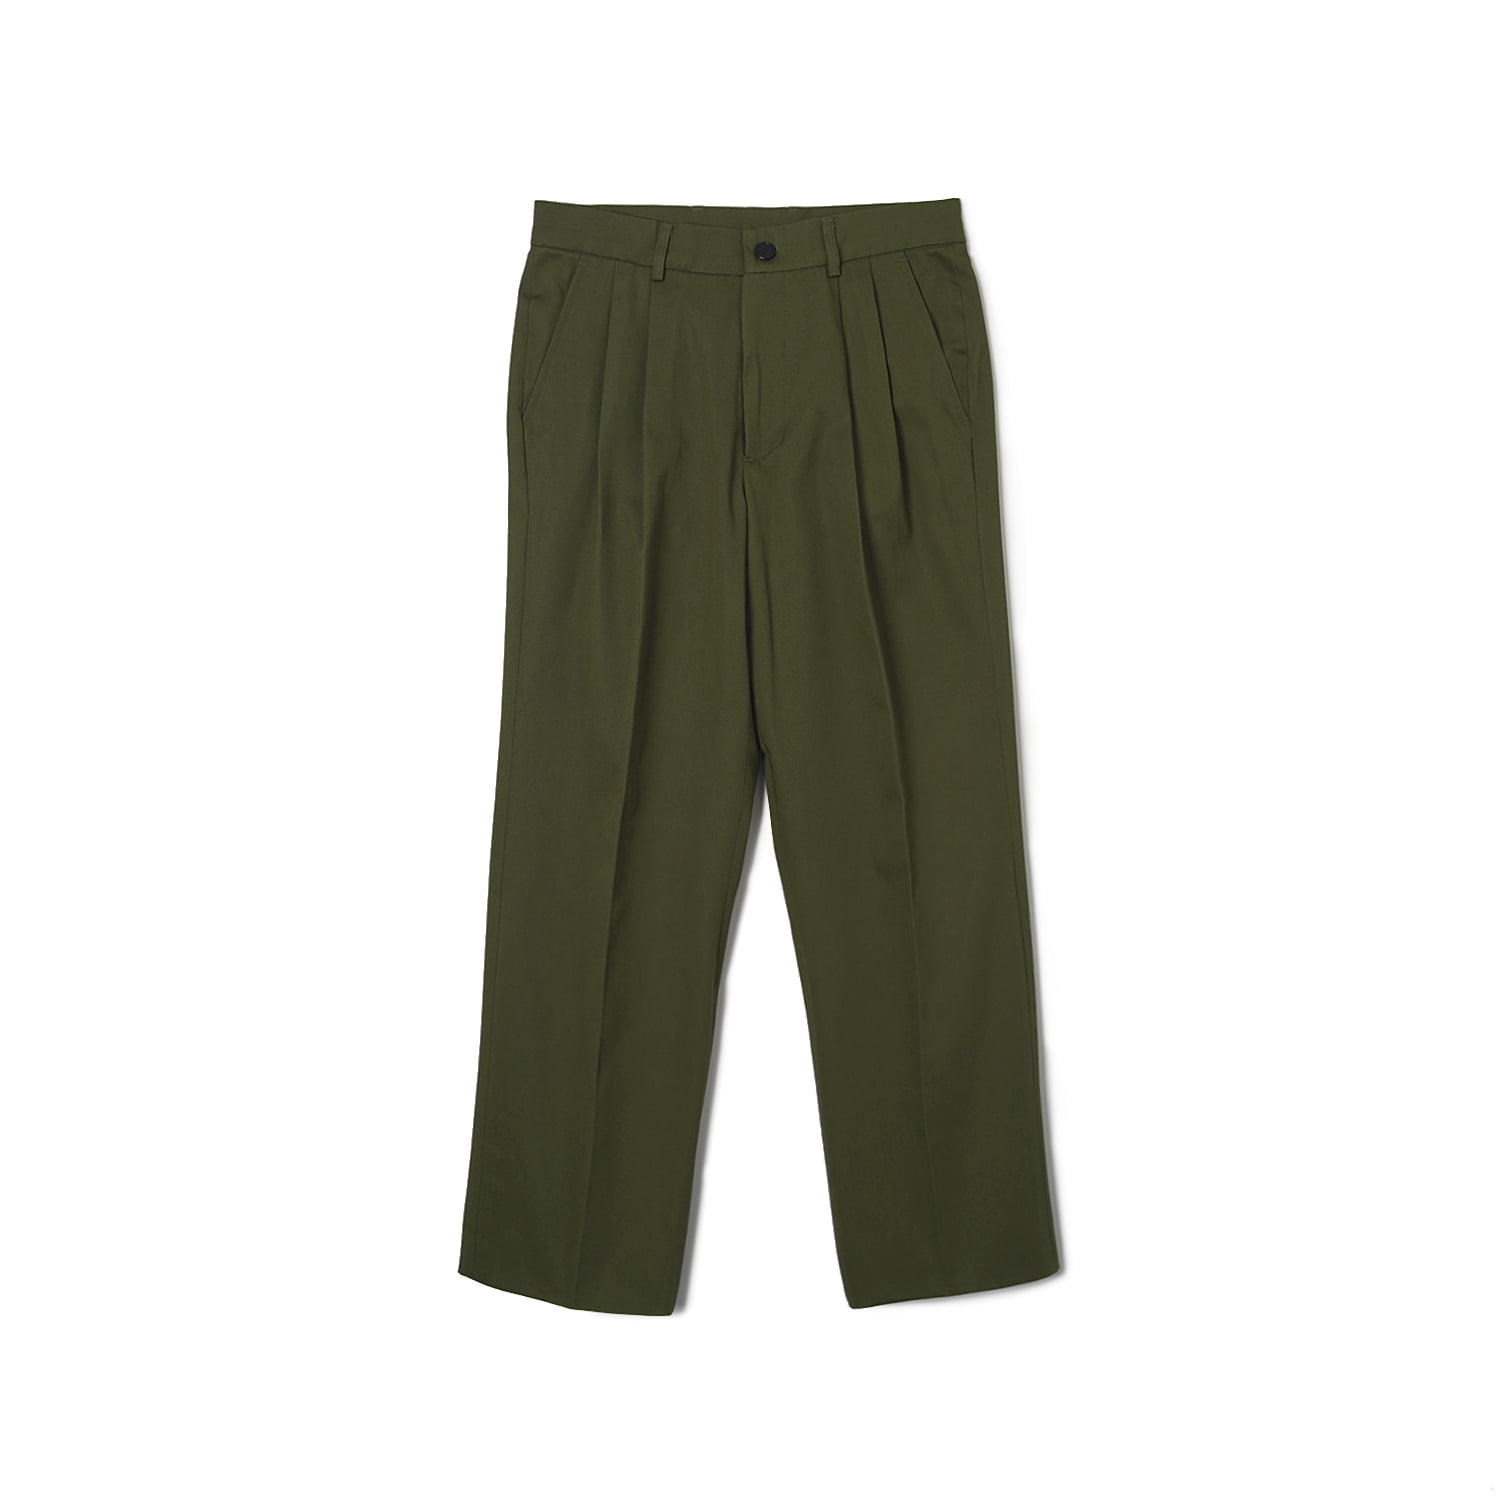 WSK Cotton Twill Chino Two-tuck Pants - OliveBANTS(반츠)